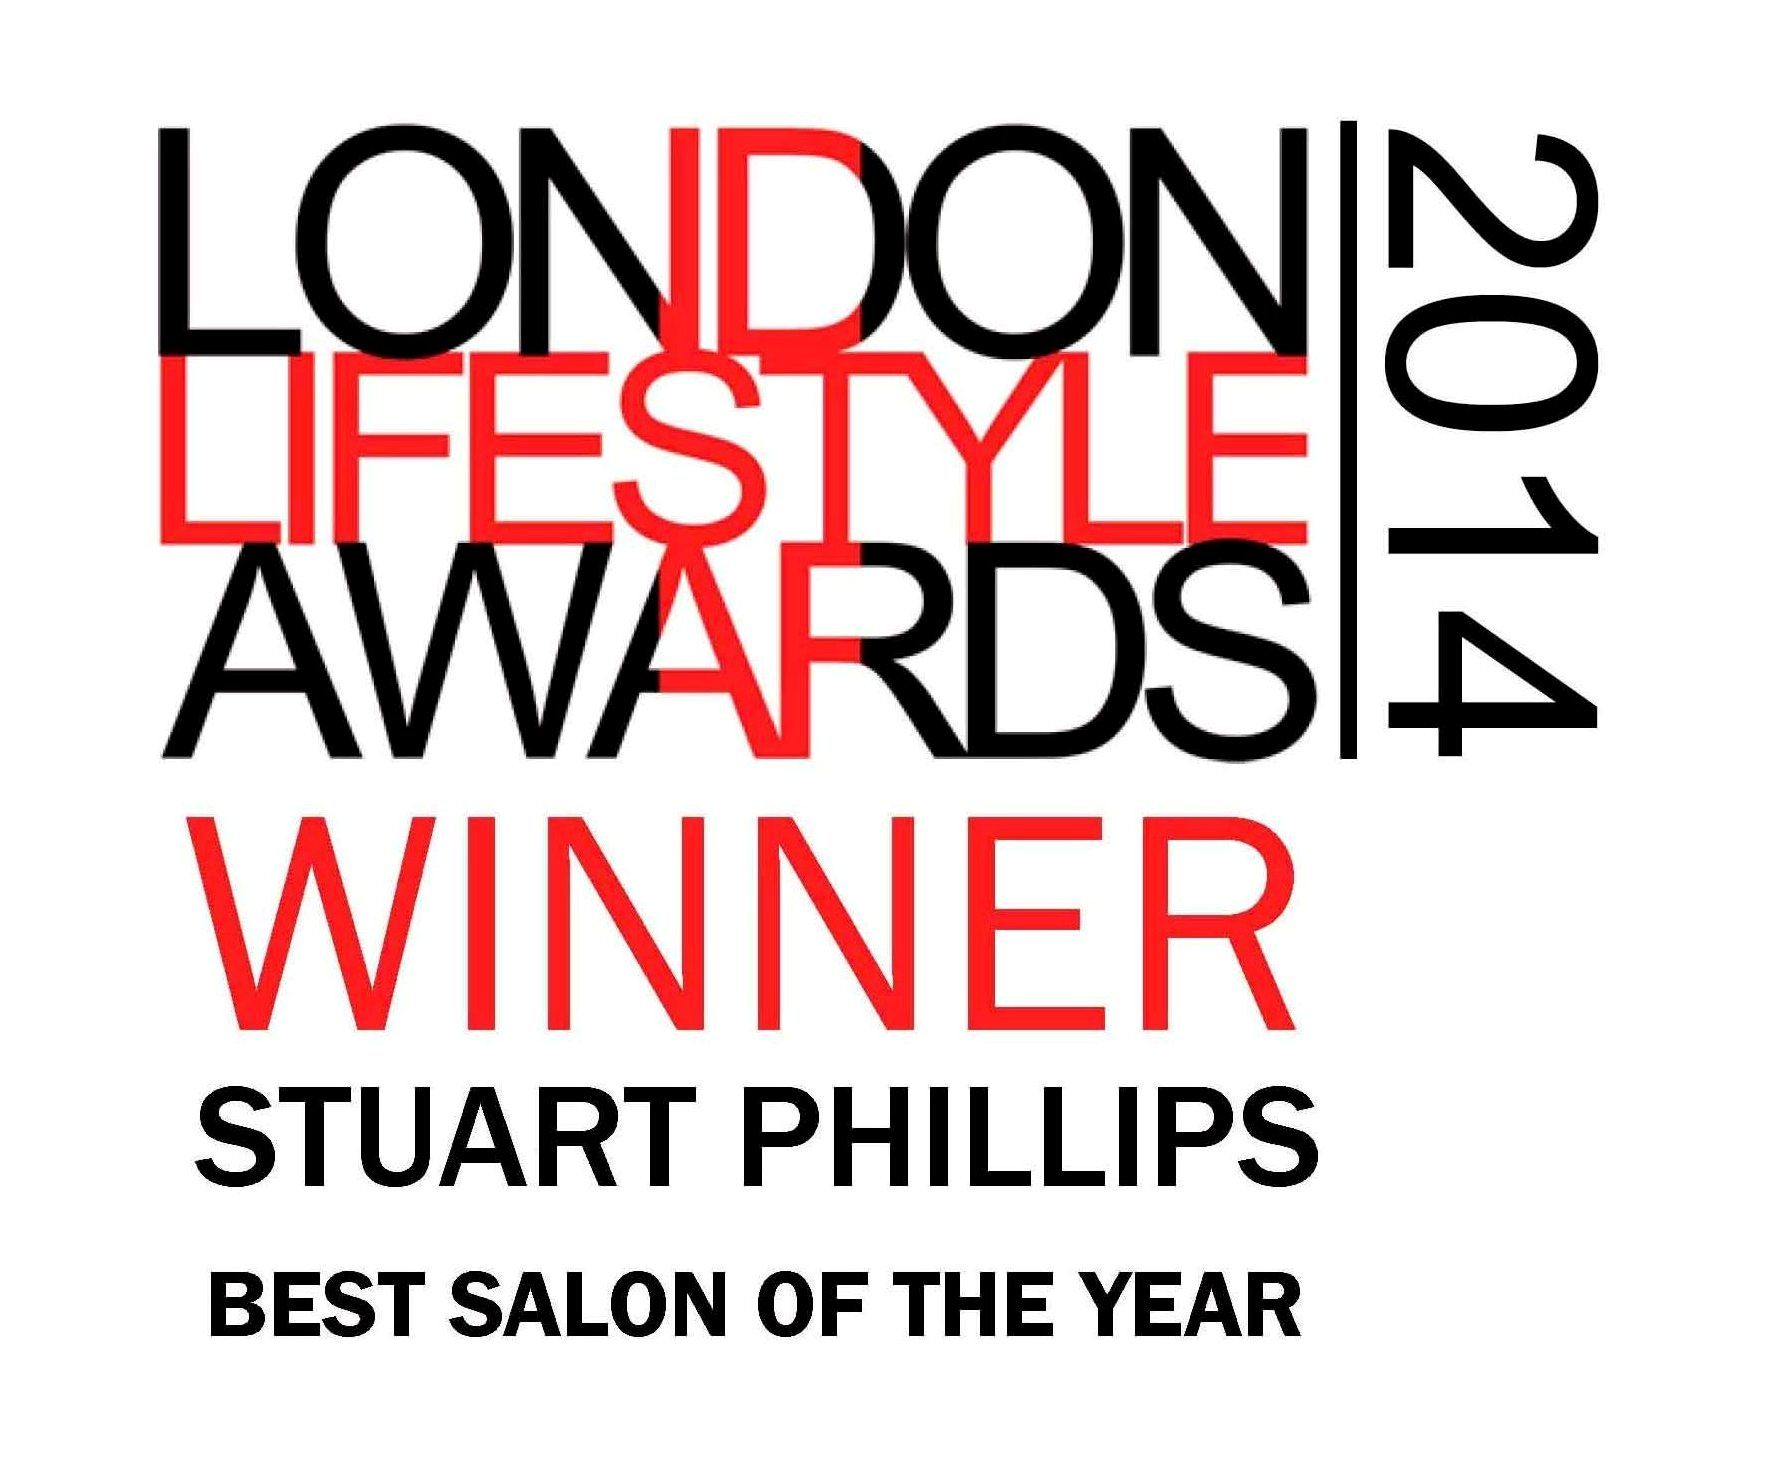 Stuart Phillips has won best salon in London at the London Lifestyle Awards 2014